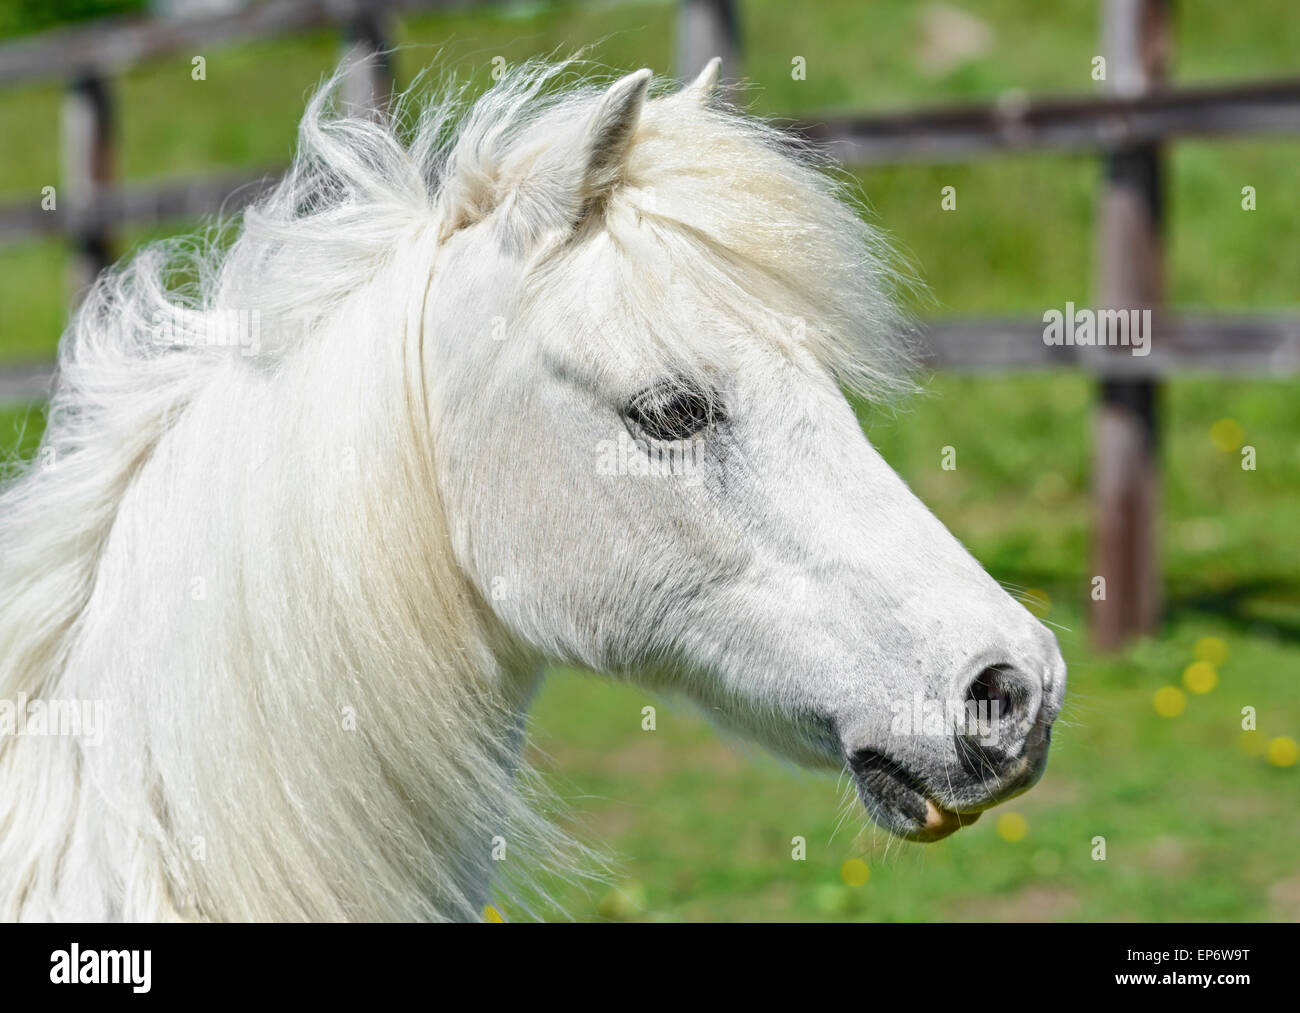 Head Of A Domestic White Horse In A Field In The Uk Stock Photo Alamy